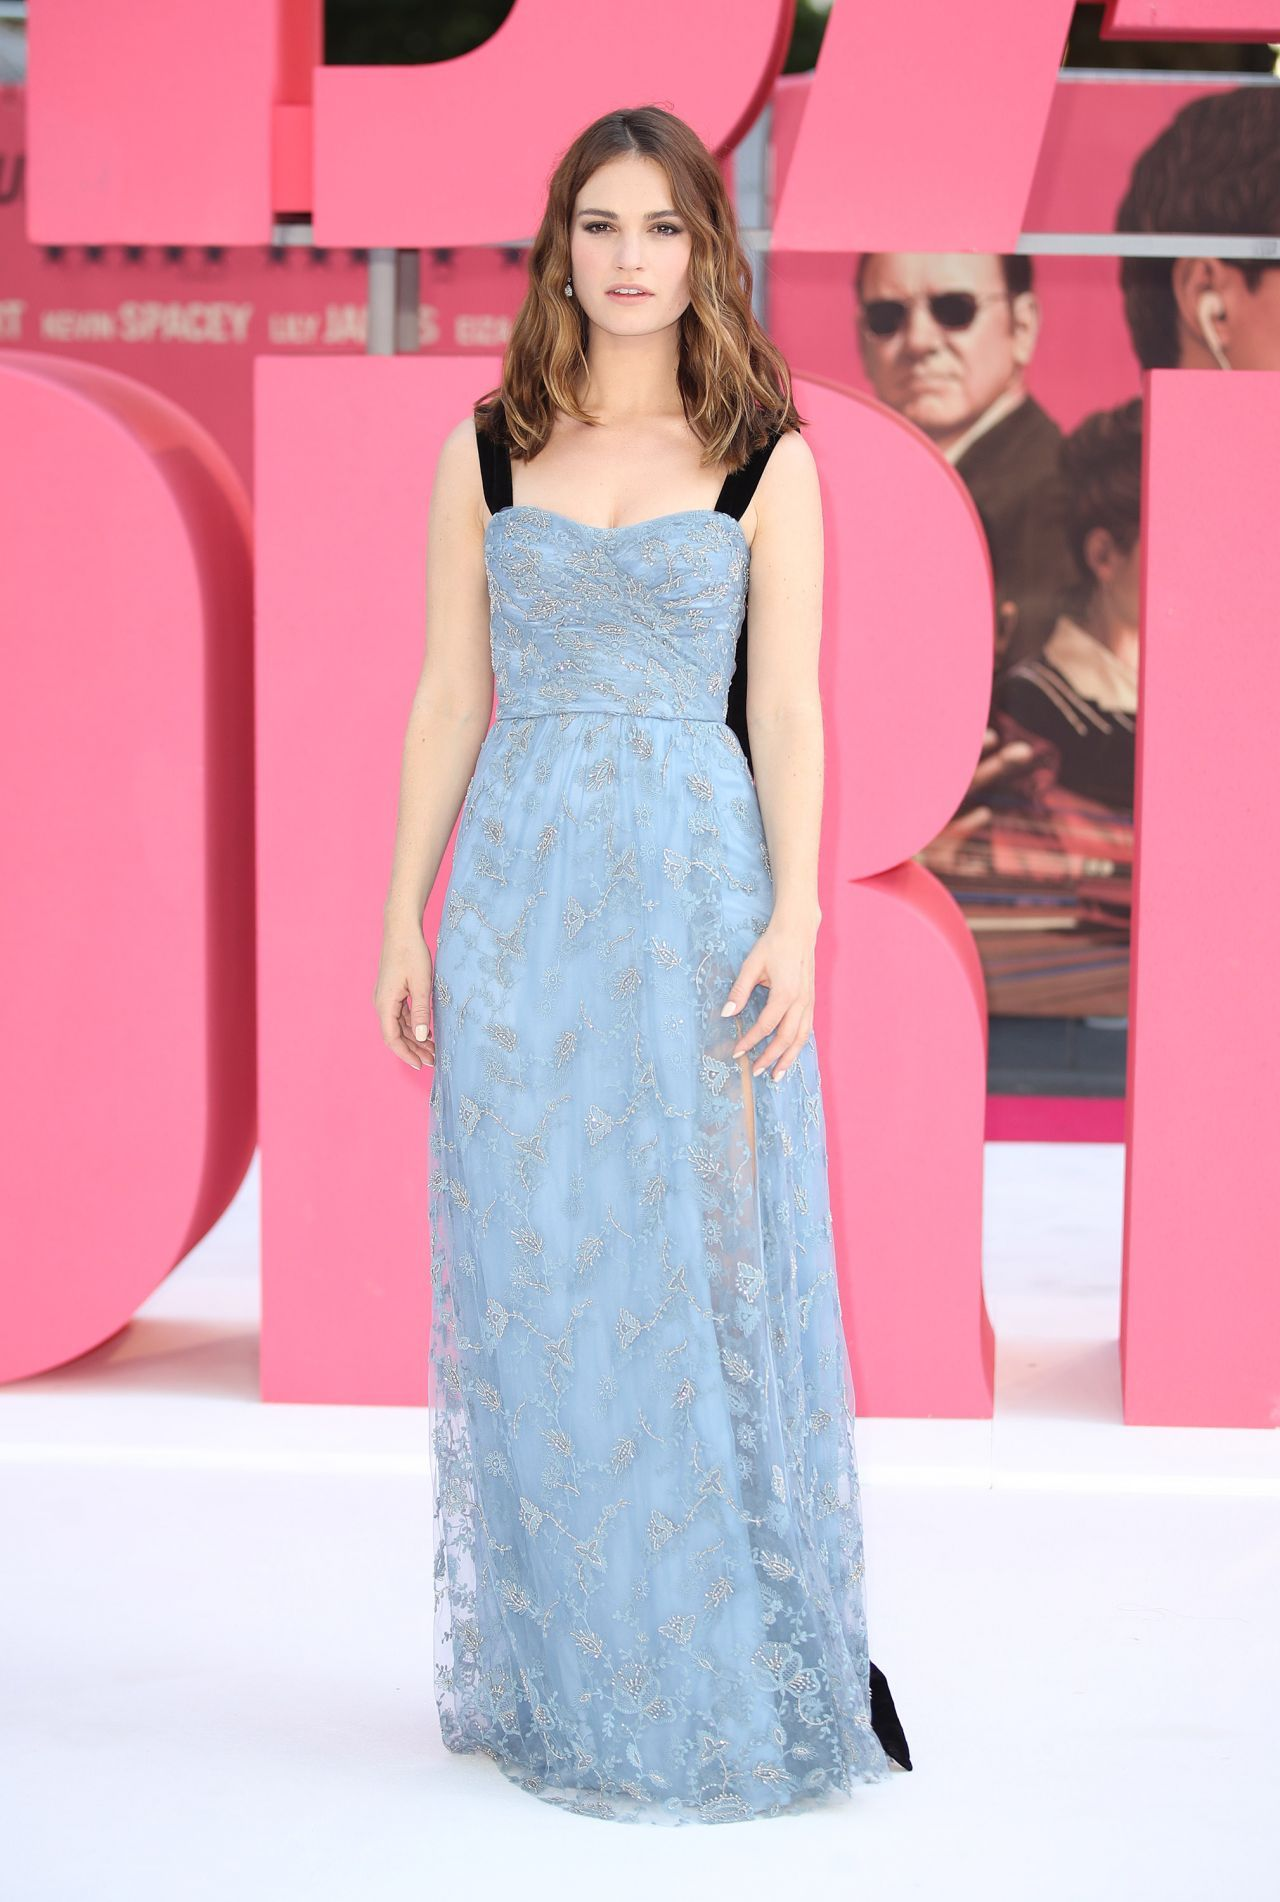 lily-james-baby-driver-european-premiere-in-london-uk-06-21-2017-3 ...